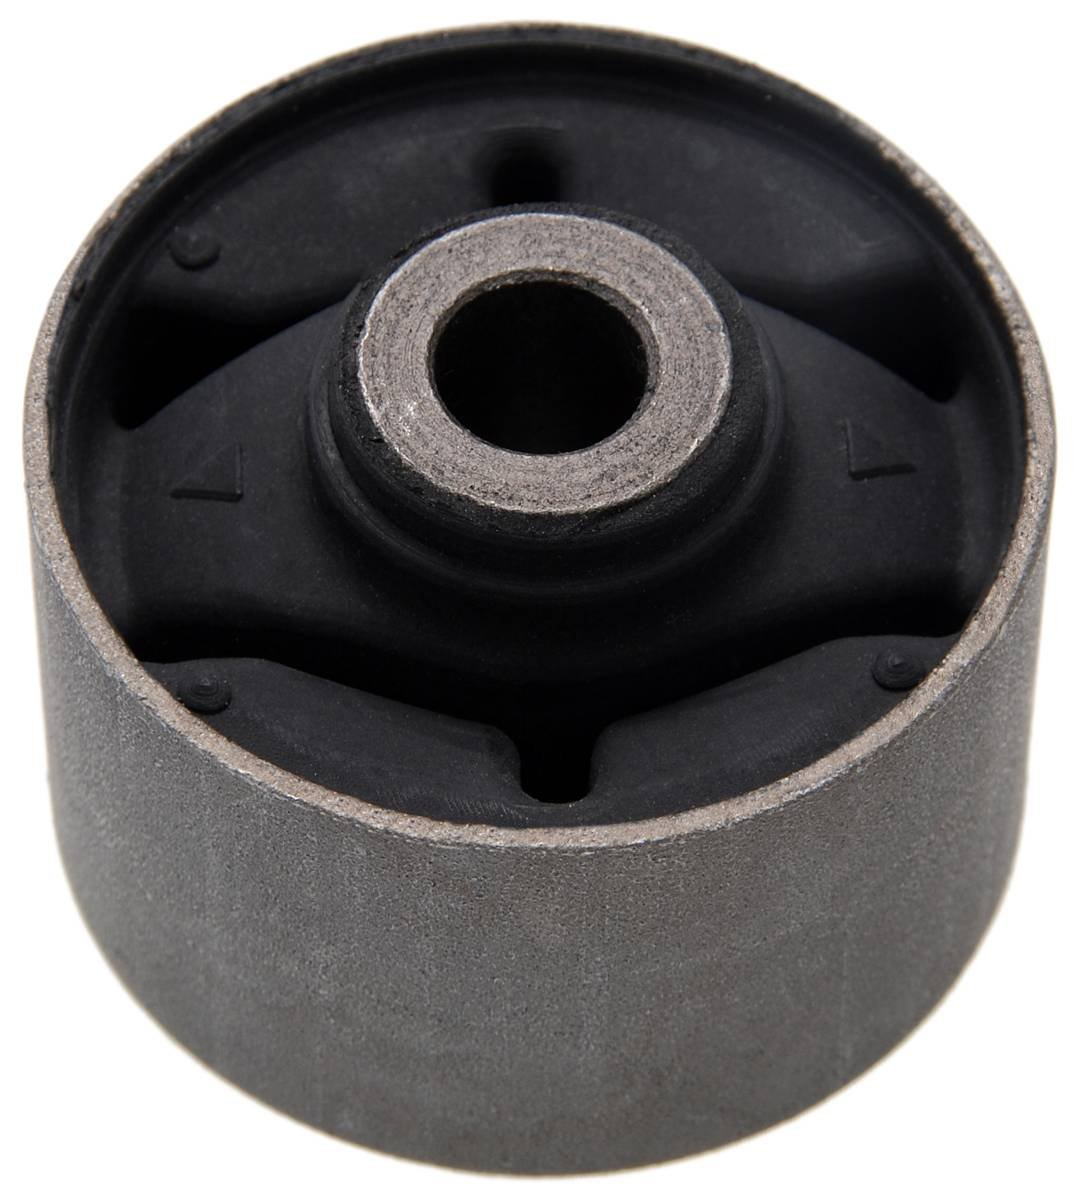 FEBEST MMB-V97R Differential Mount Arm Bushing